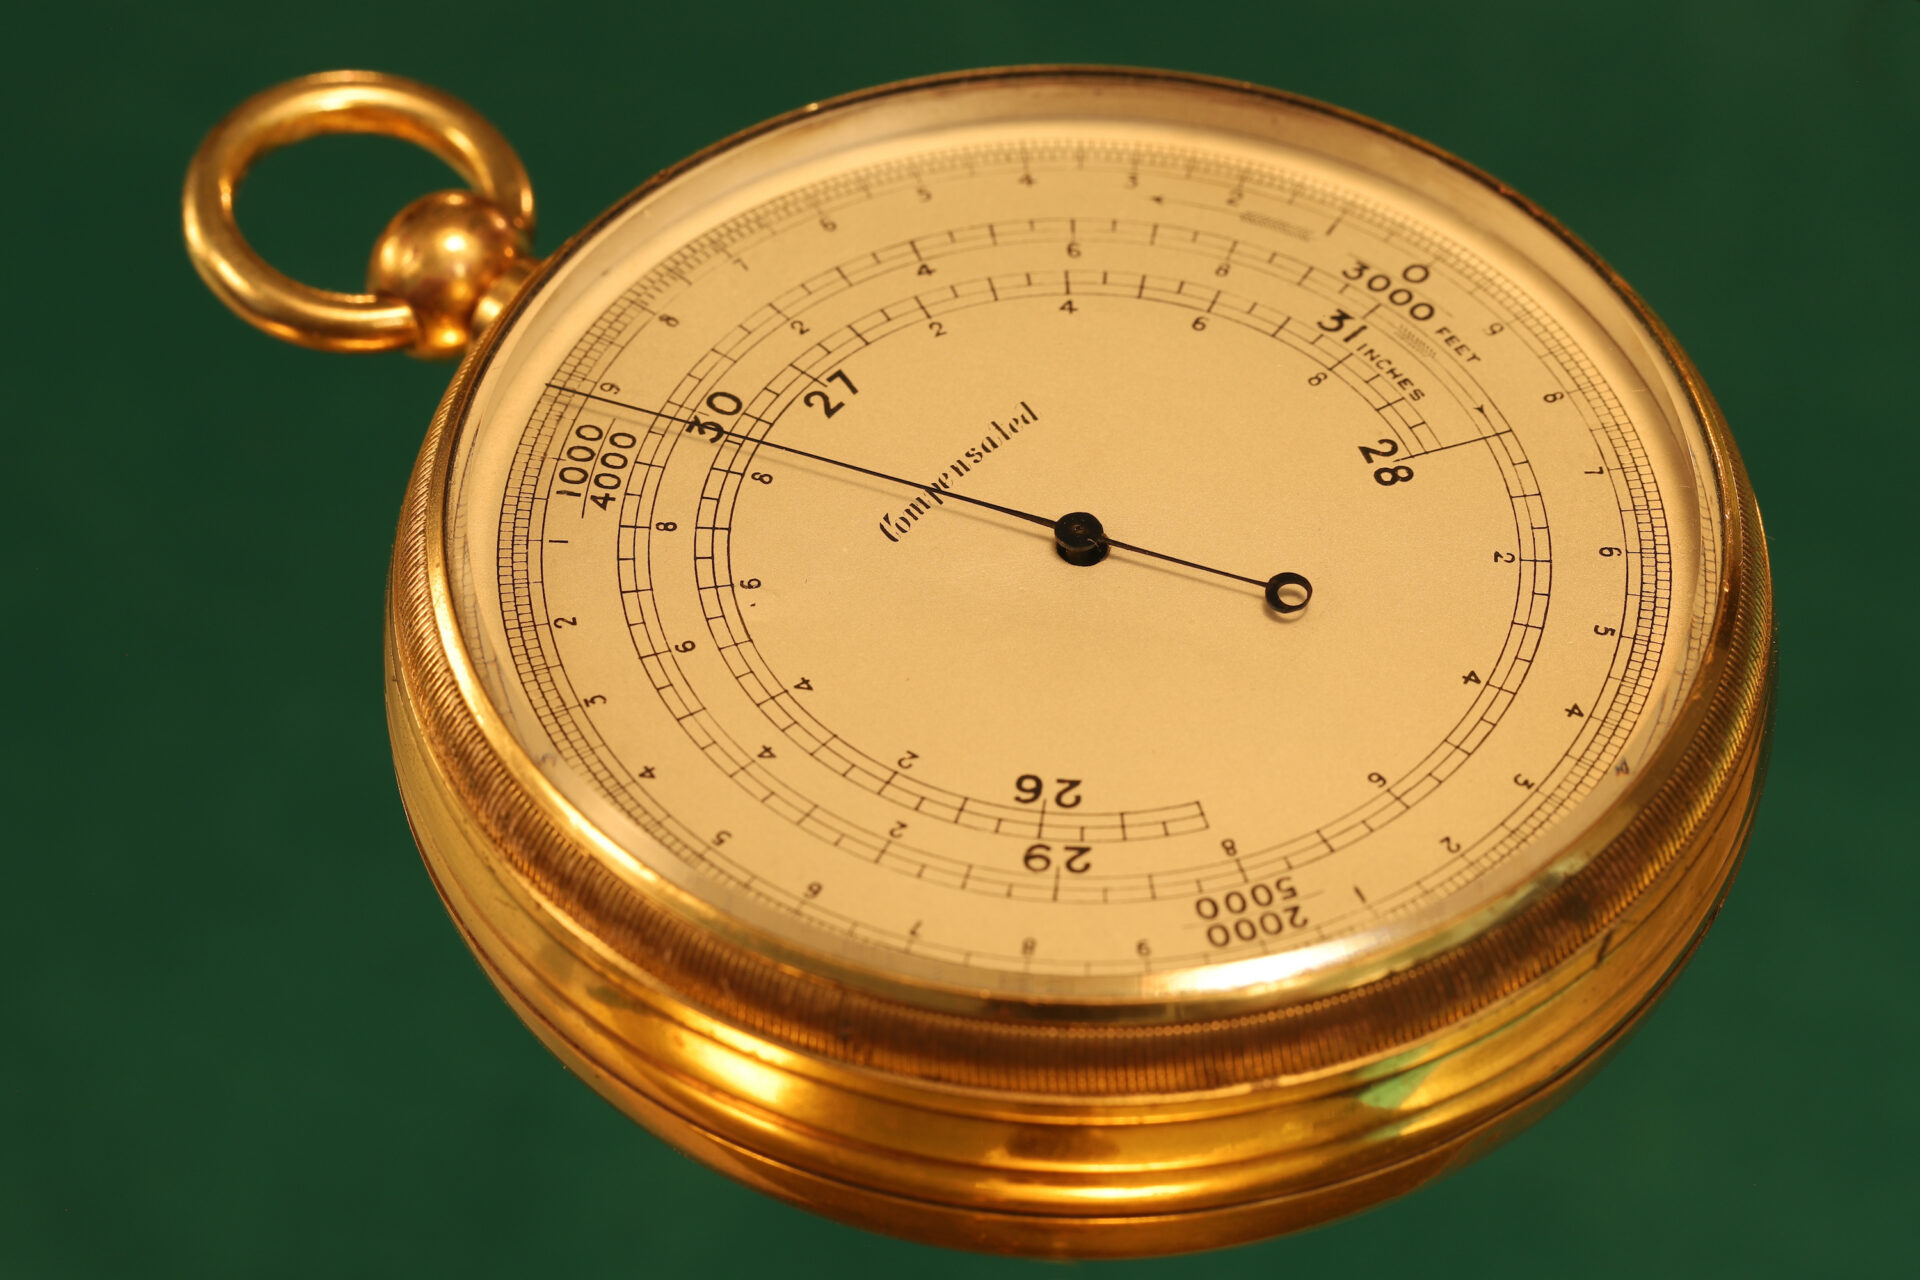 Image of Short & Mason Double Rotation Altimeter c1910 taken from lefthand side